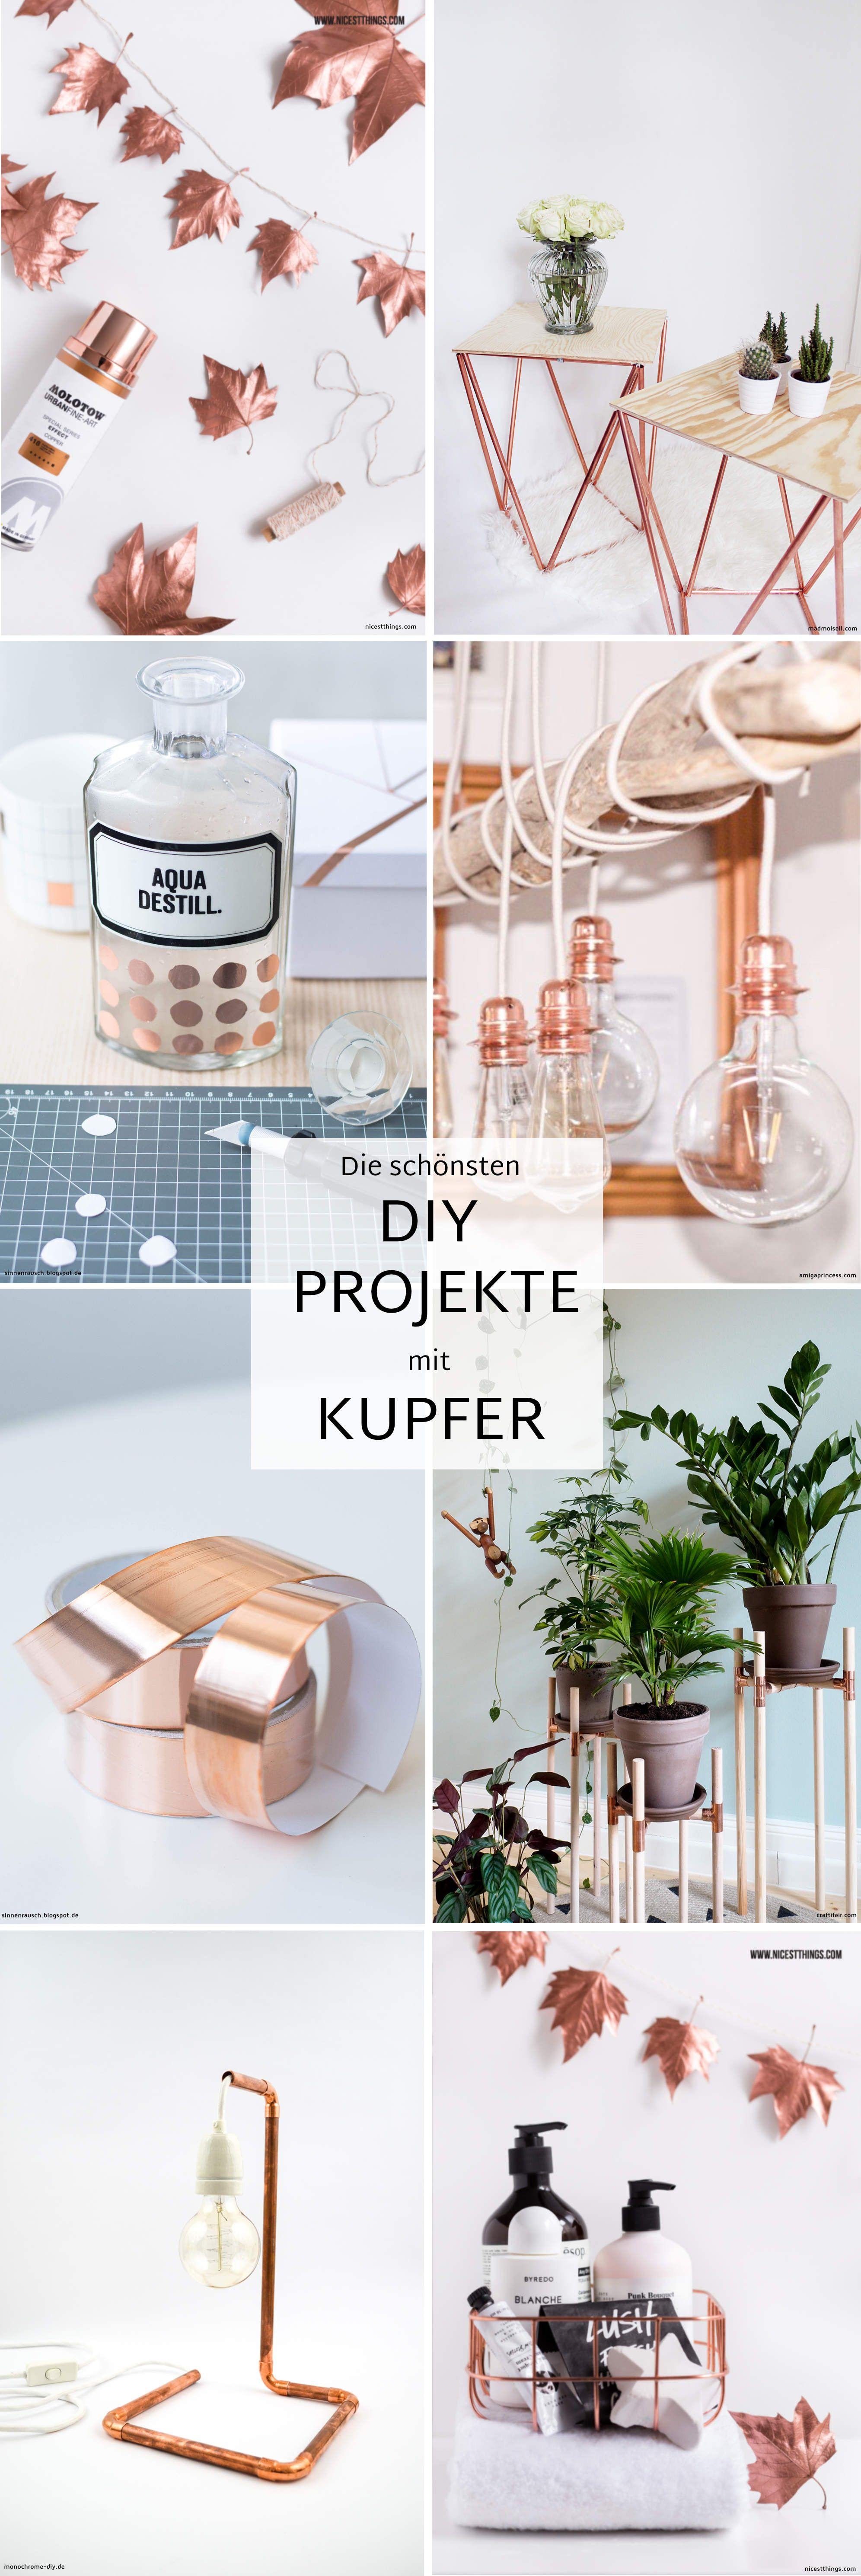 die sch nsten diy projekte mit kupfer kupfer deko diy anleitungen und kupfer. Black Bedroom Furniture Sets. Home Design Ideas